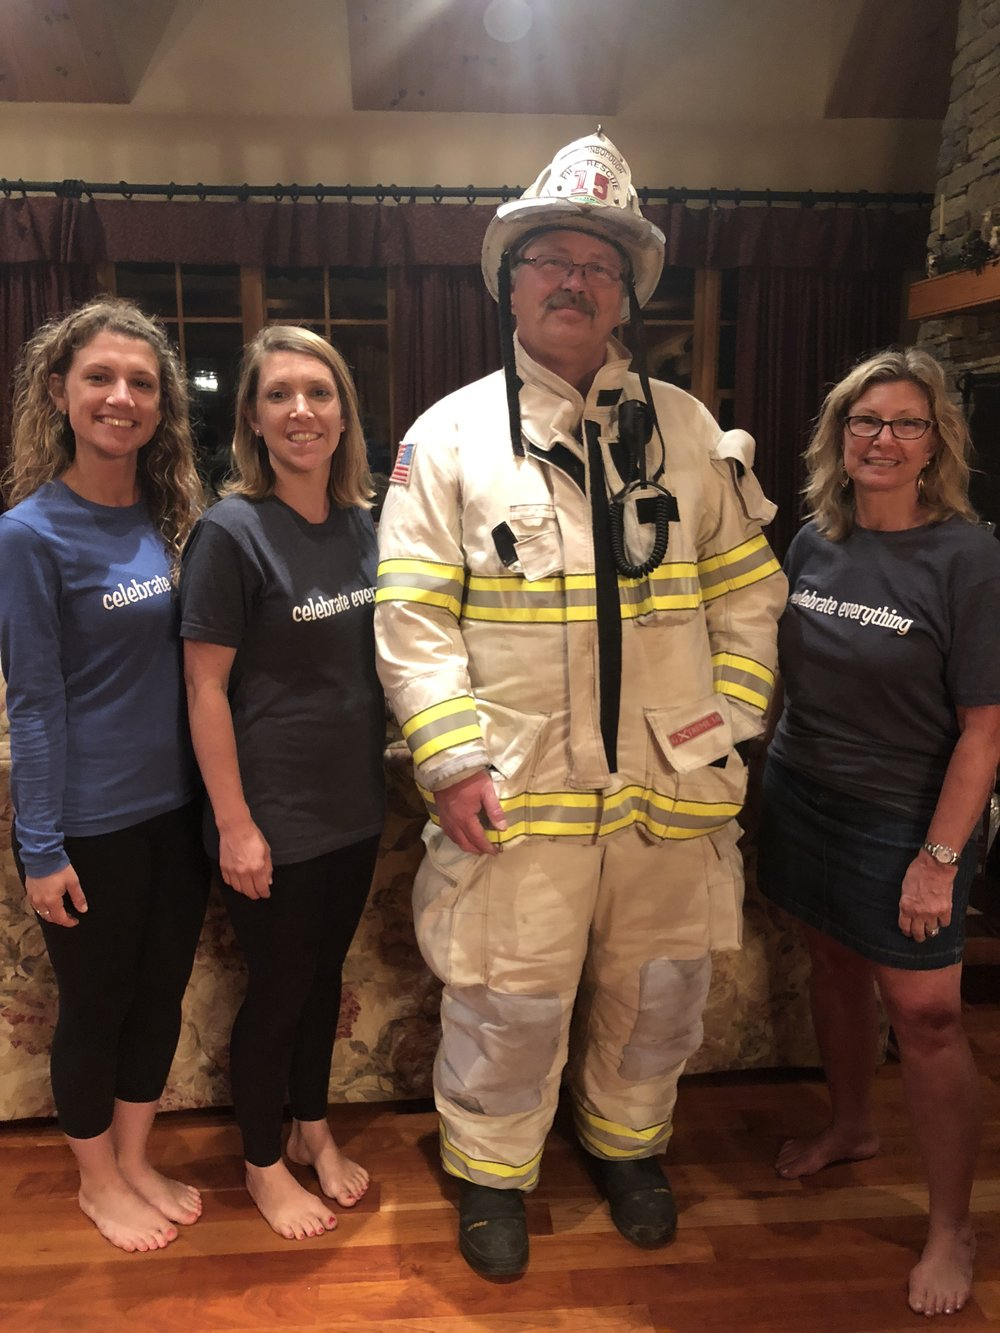 Shannon, Kara and Debbie with Fire Chief Bengston